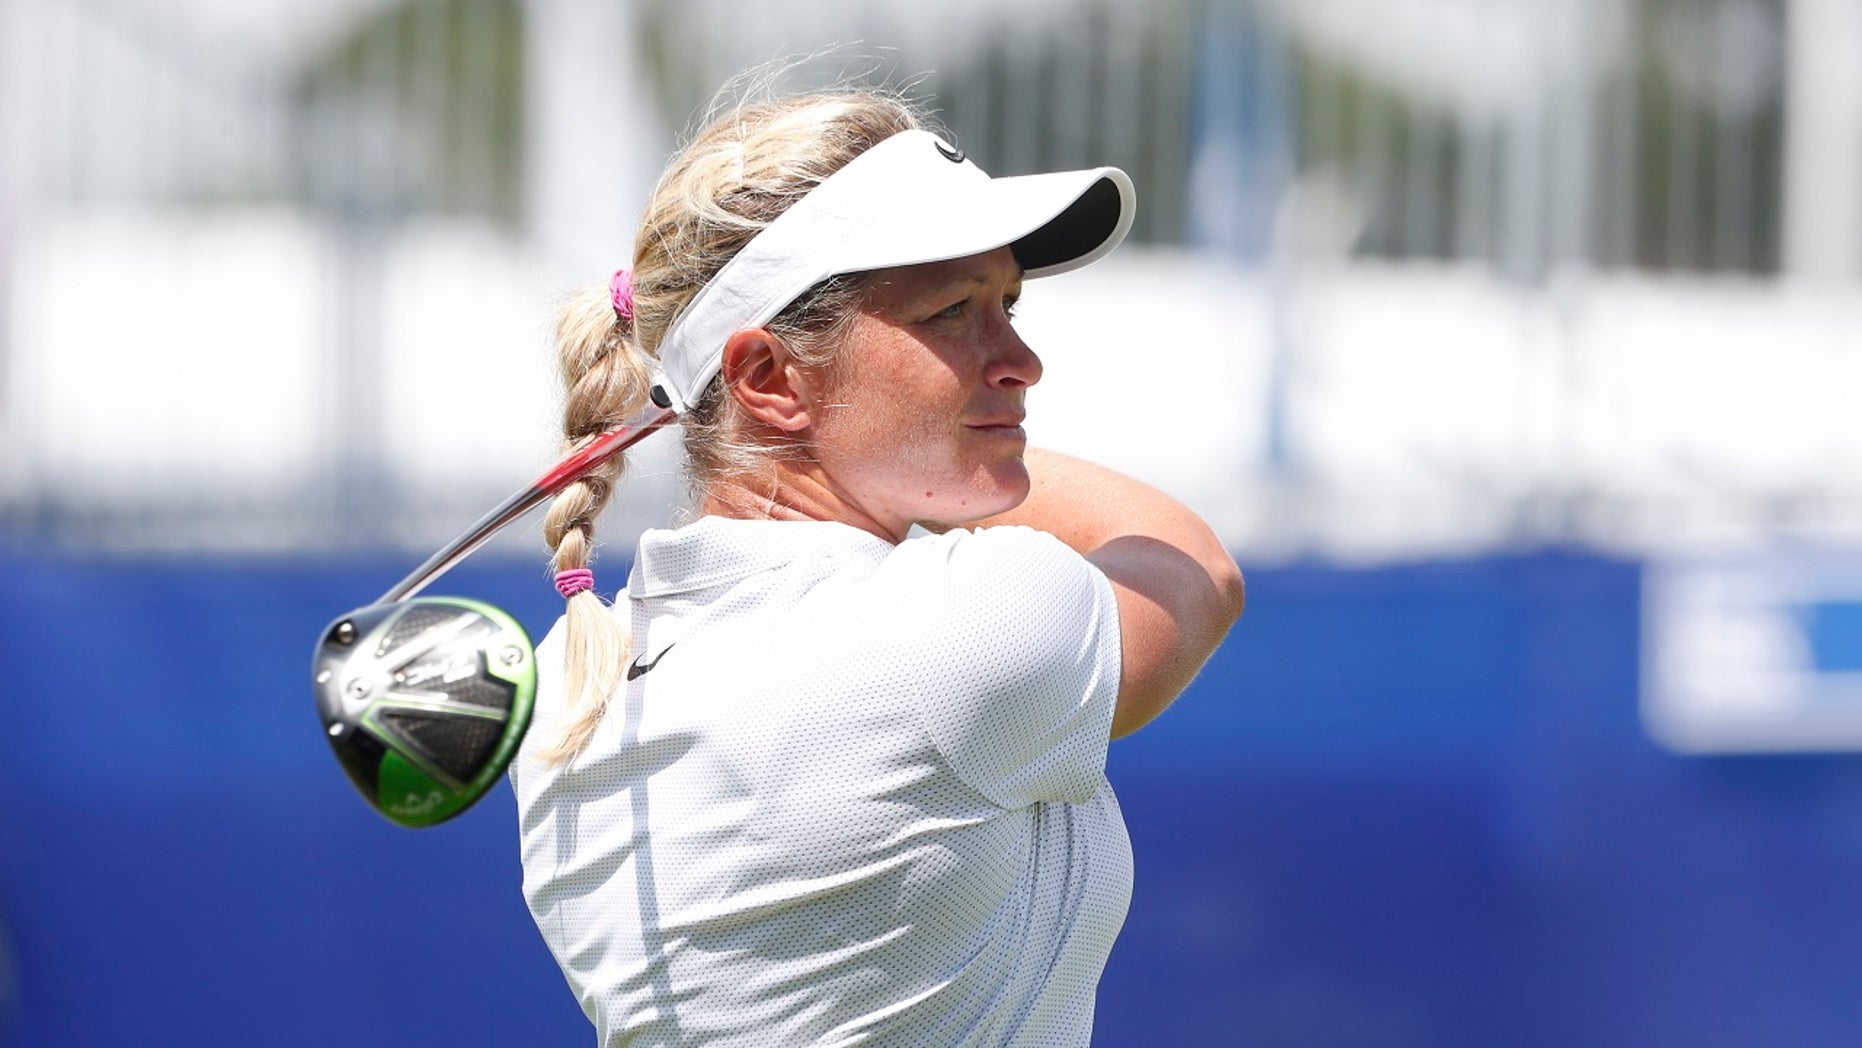 """Pro golfer Suzann Pettersen claims a Norwegian newspaper took her comments about President Donald Trump """"way out of context."""""""